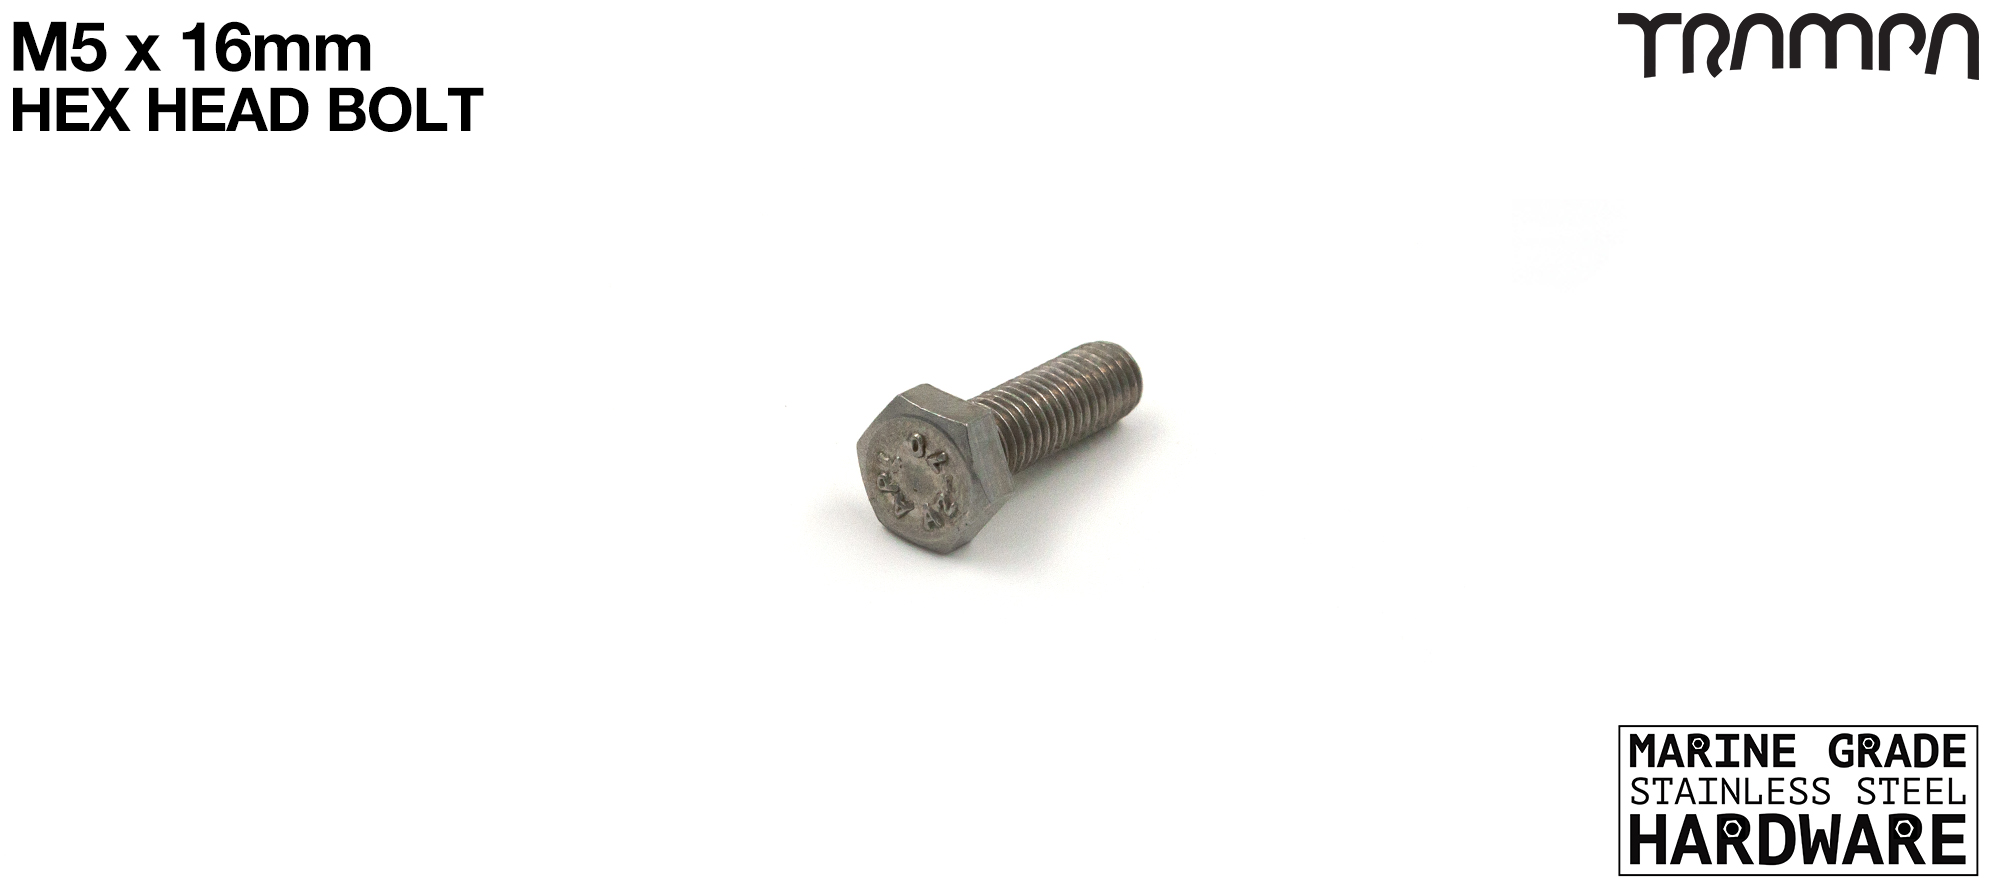 M5 x 16mm Hex Head Bolt ISO 4017 Marine Grade Stainless Steel